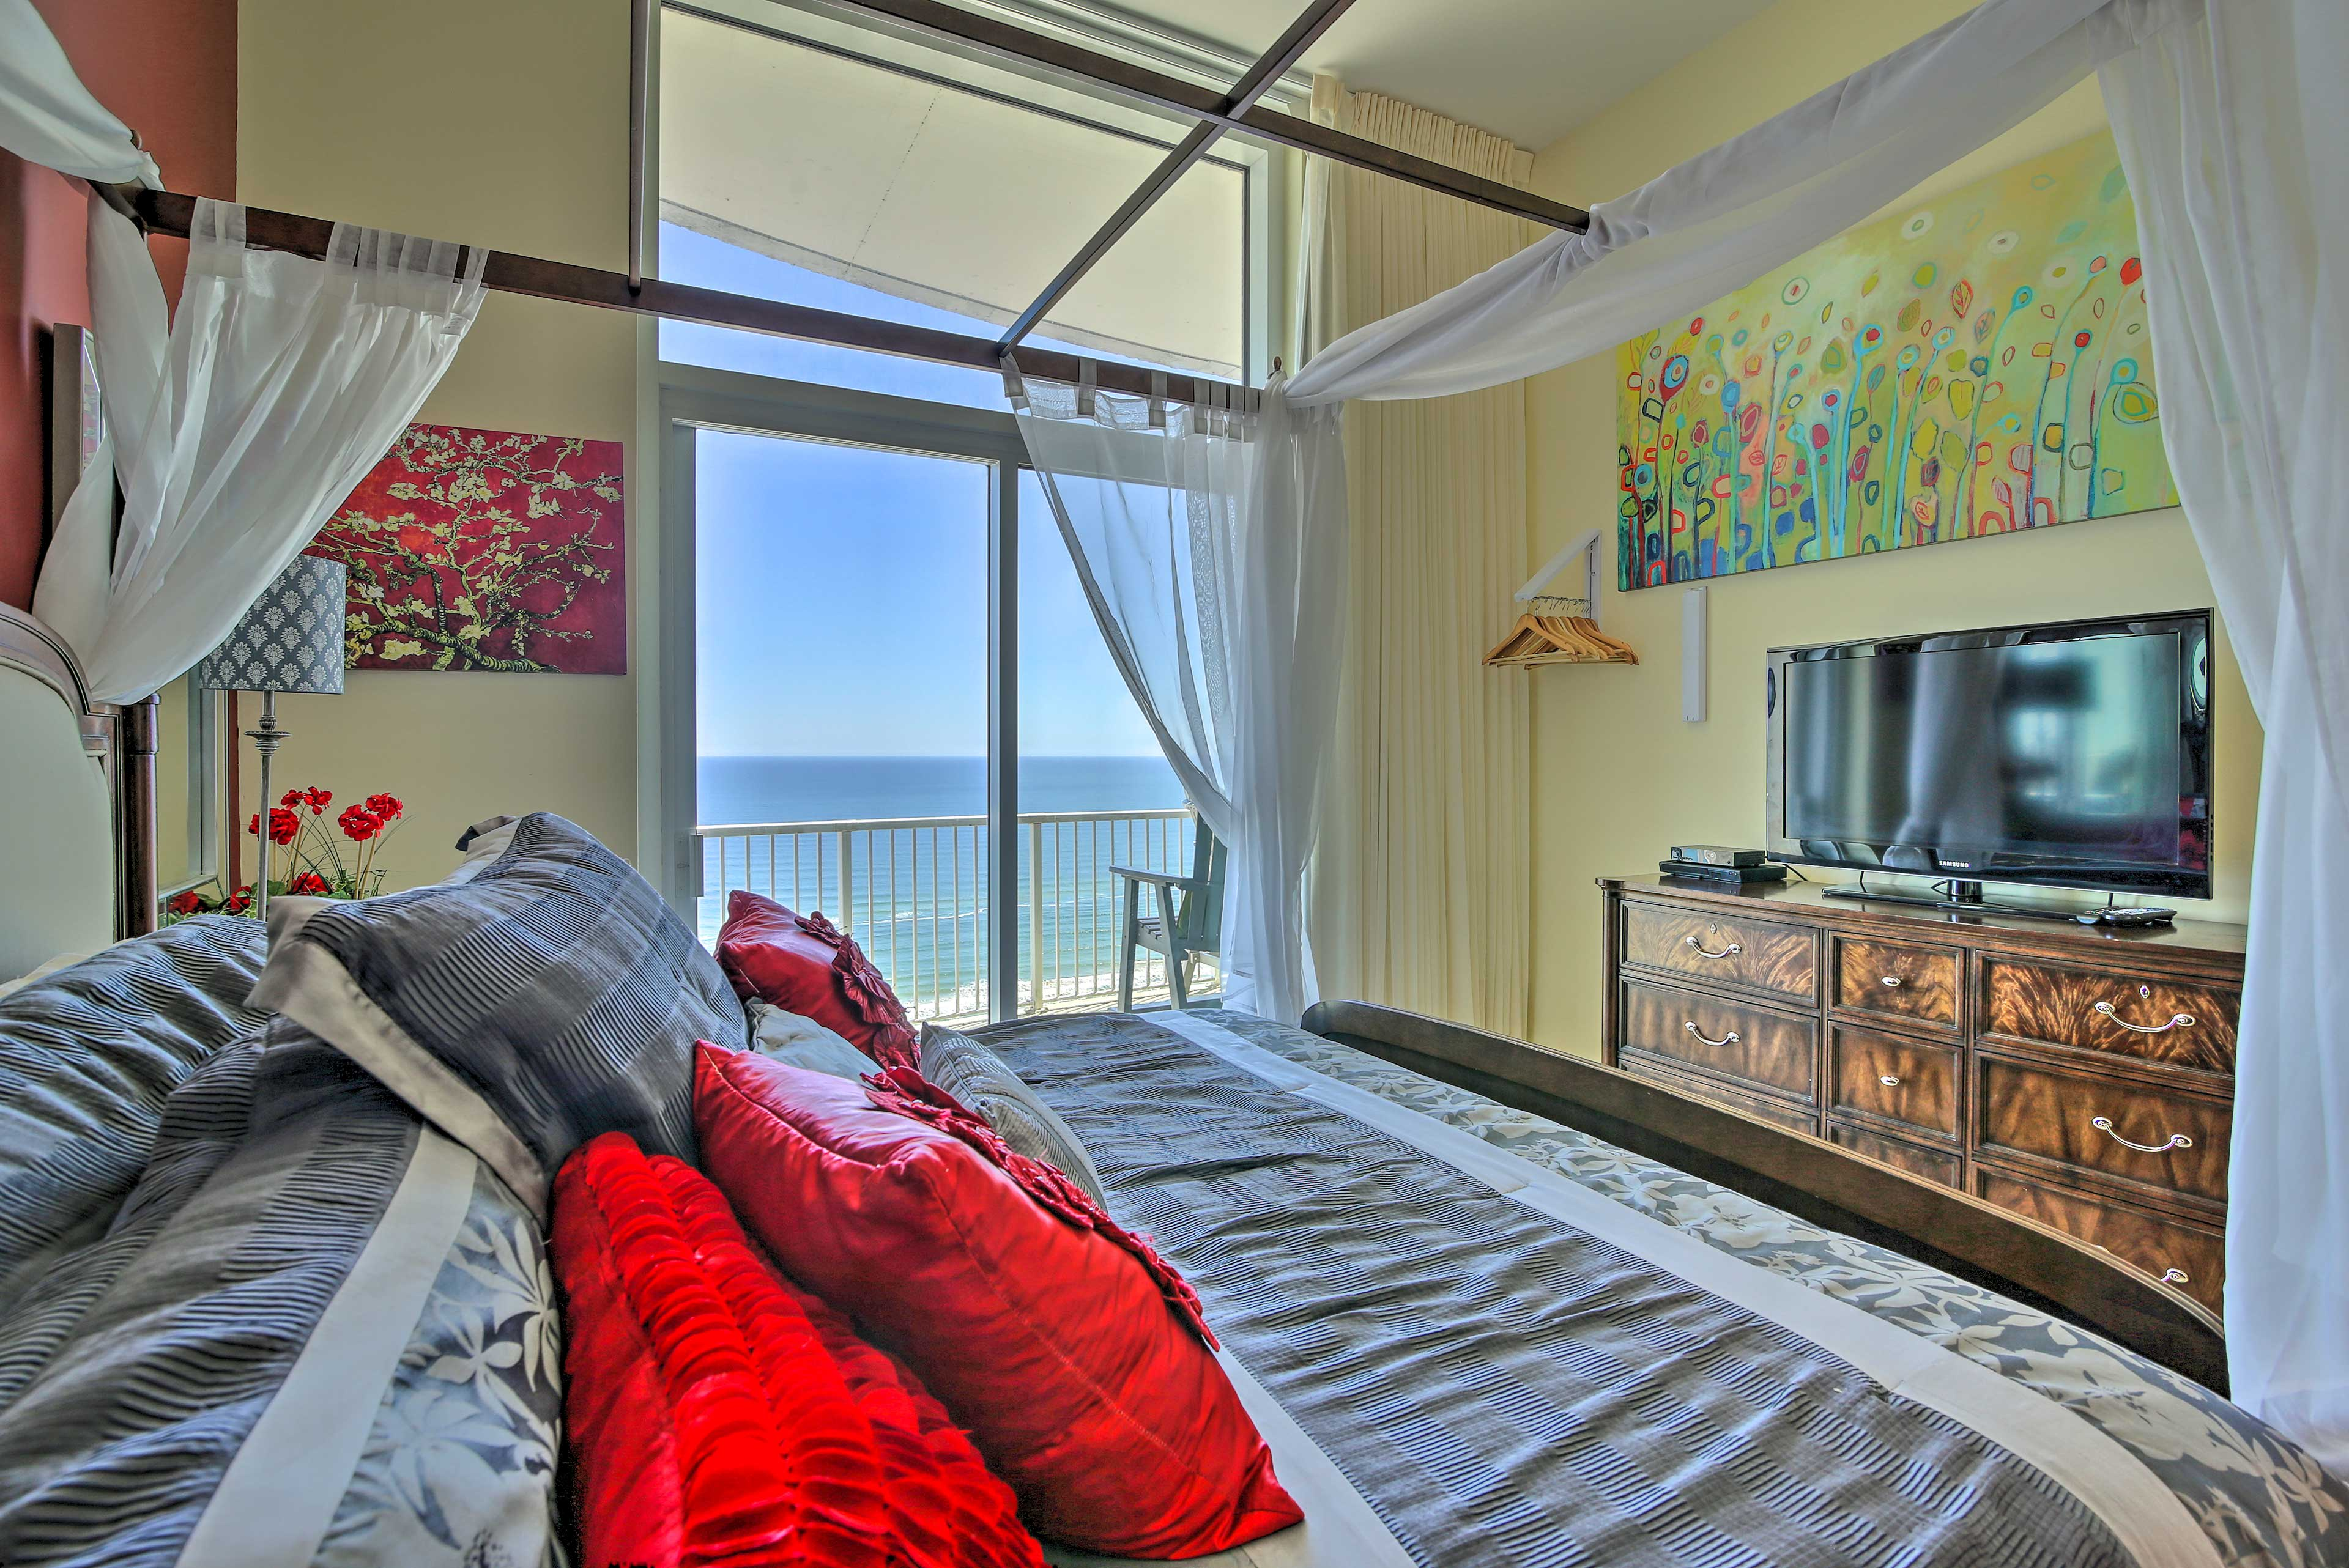 Enjoy the view from your bed each morning to feel ready for a new day.